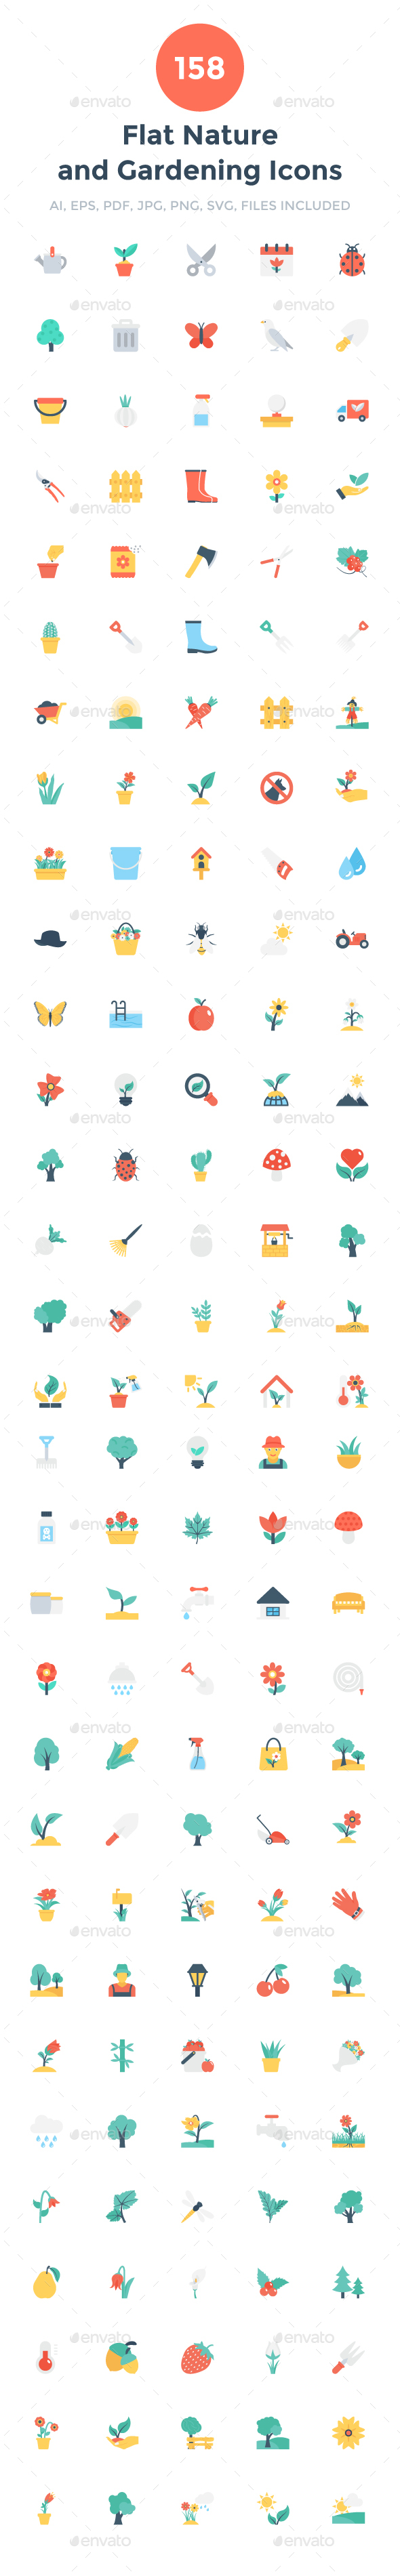 158 Flat Nature and Gardening Icons - Icons